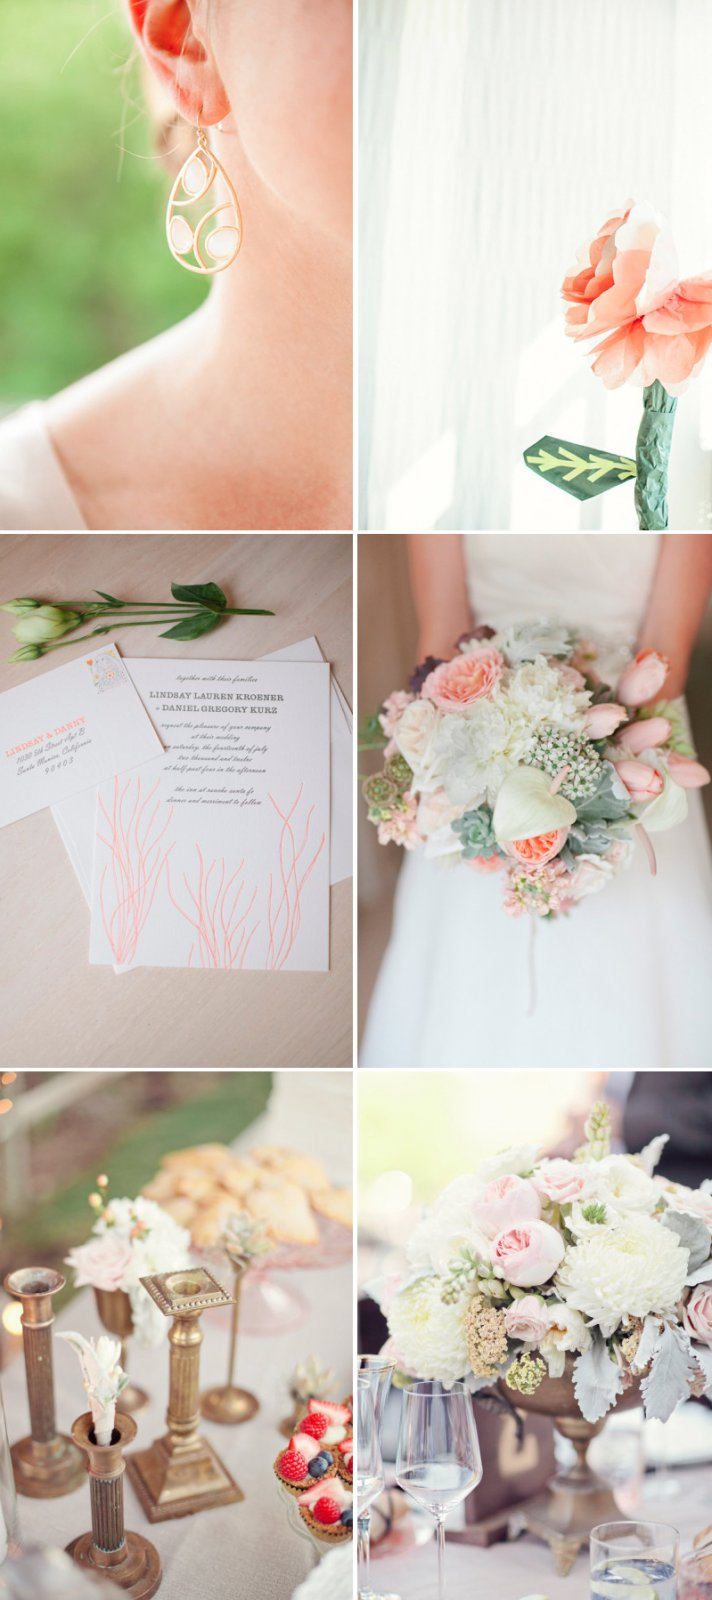 Peach Cream Gold Wedding Colors Romantic Wedding ideas 2